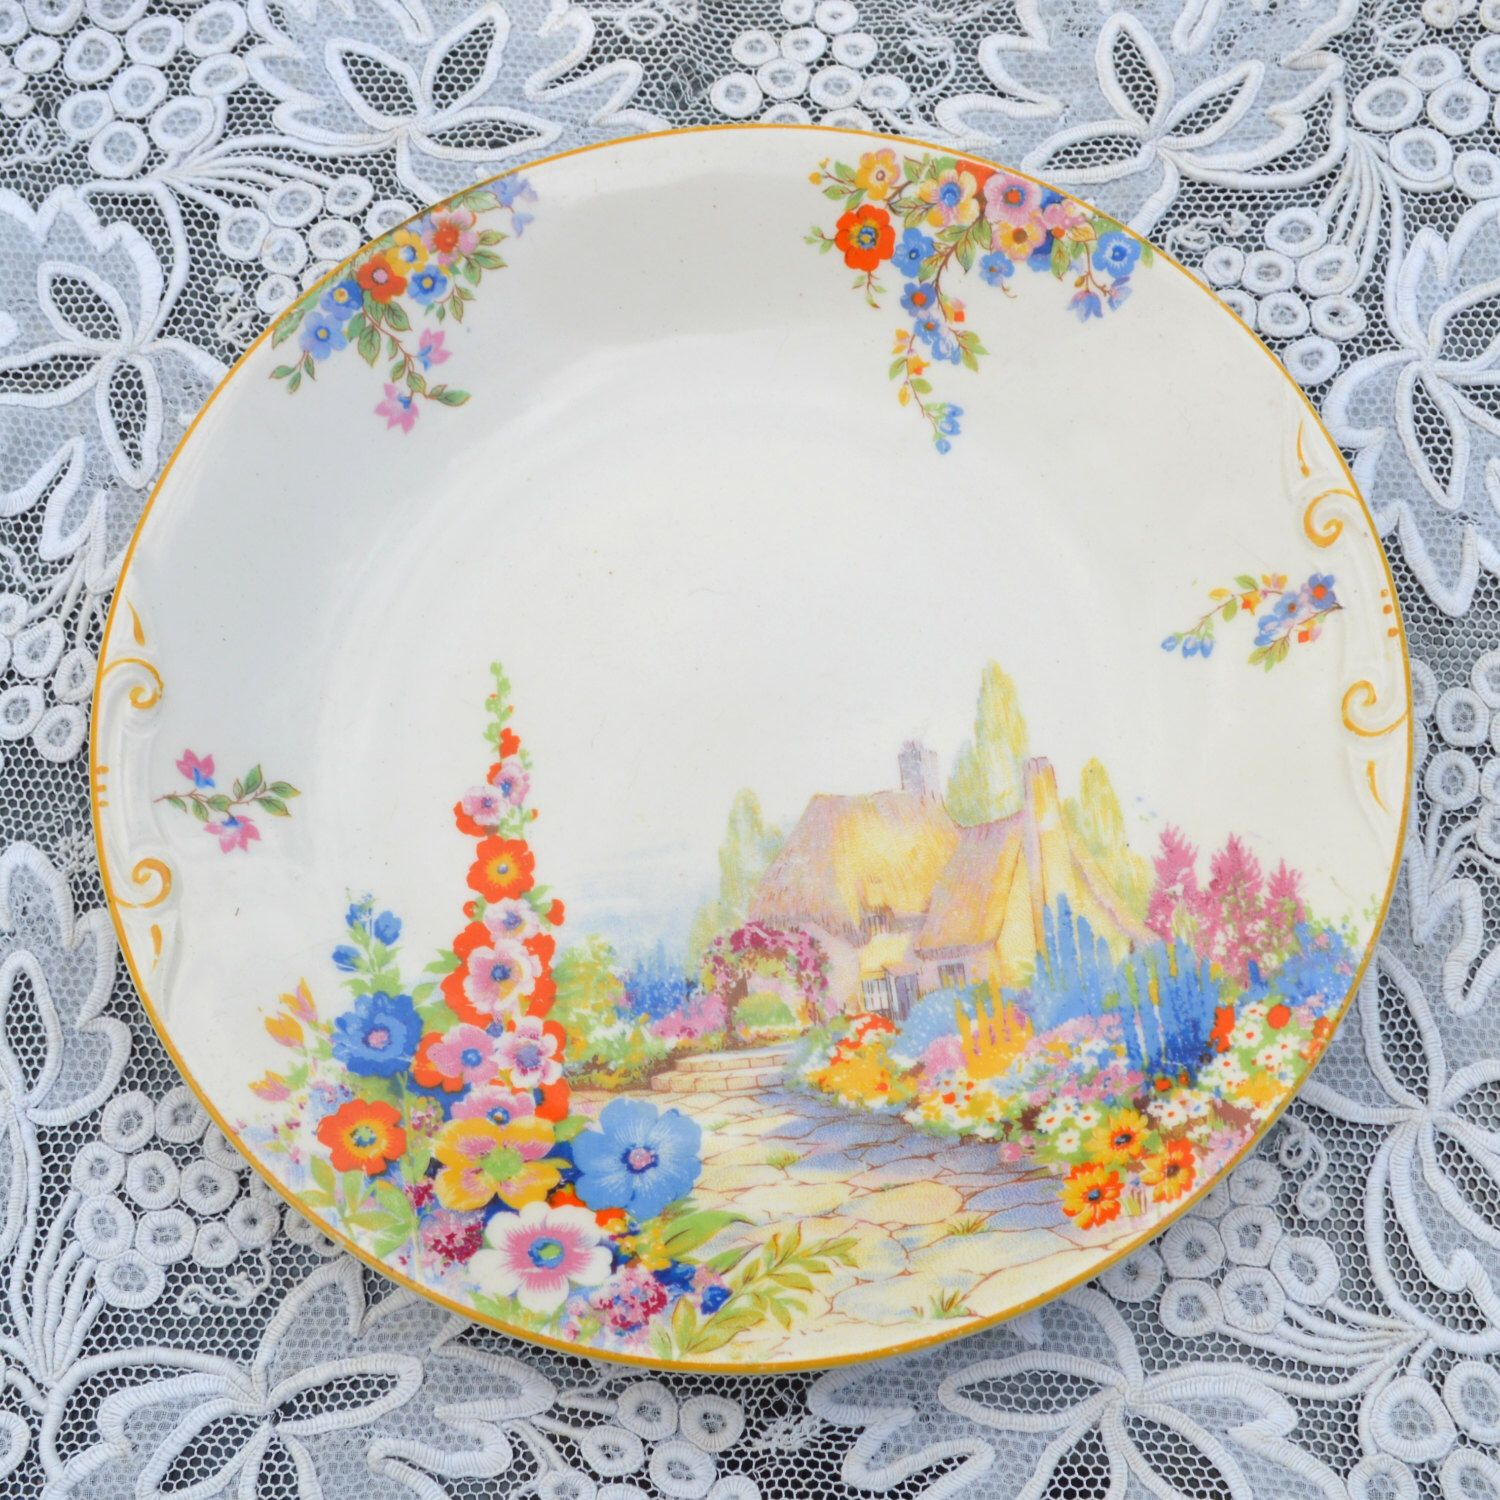 """Vintage Art Deco Hampton Ivory Old England Gardens Swinnertons Cake Sandwich Serving Plate Country Cottage and Hollyhocks 9"""" by Wicksteads on Etsy https://www.etsy.com/listing/191927095/vintage-art-deco-hampton-ivory-old"""